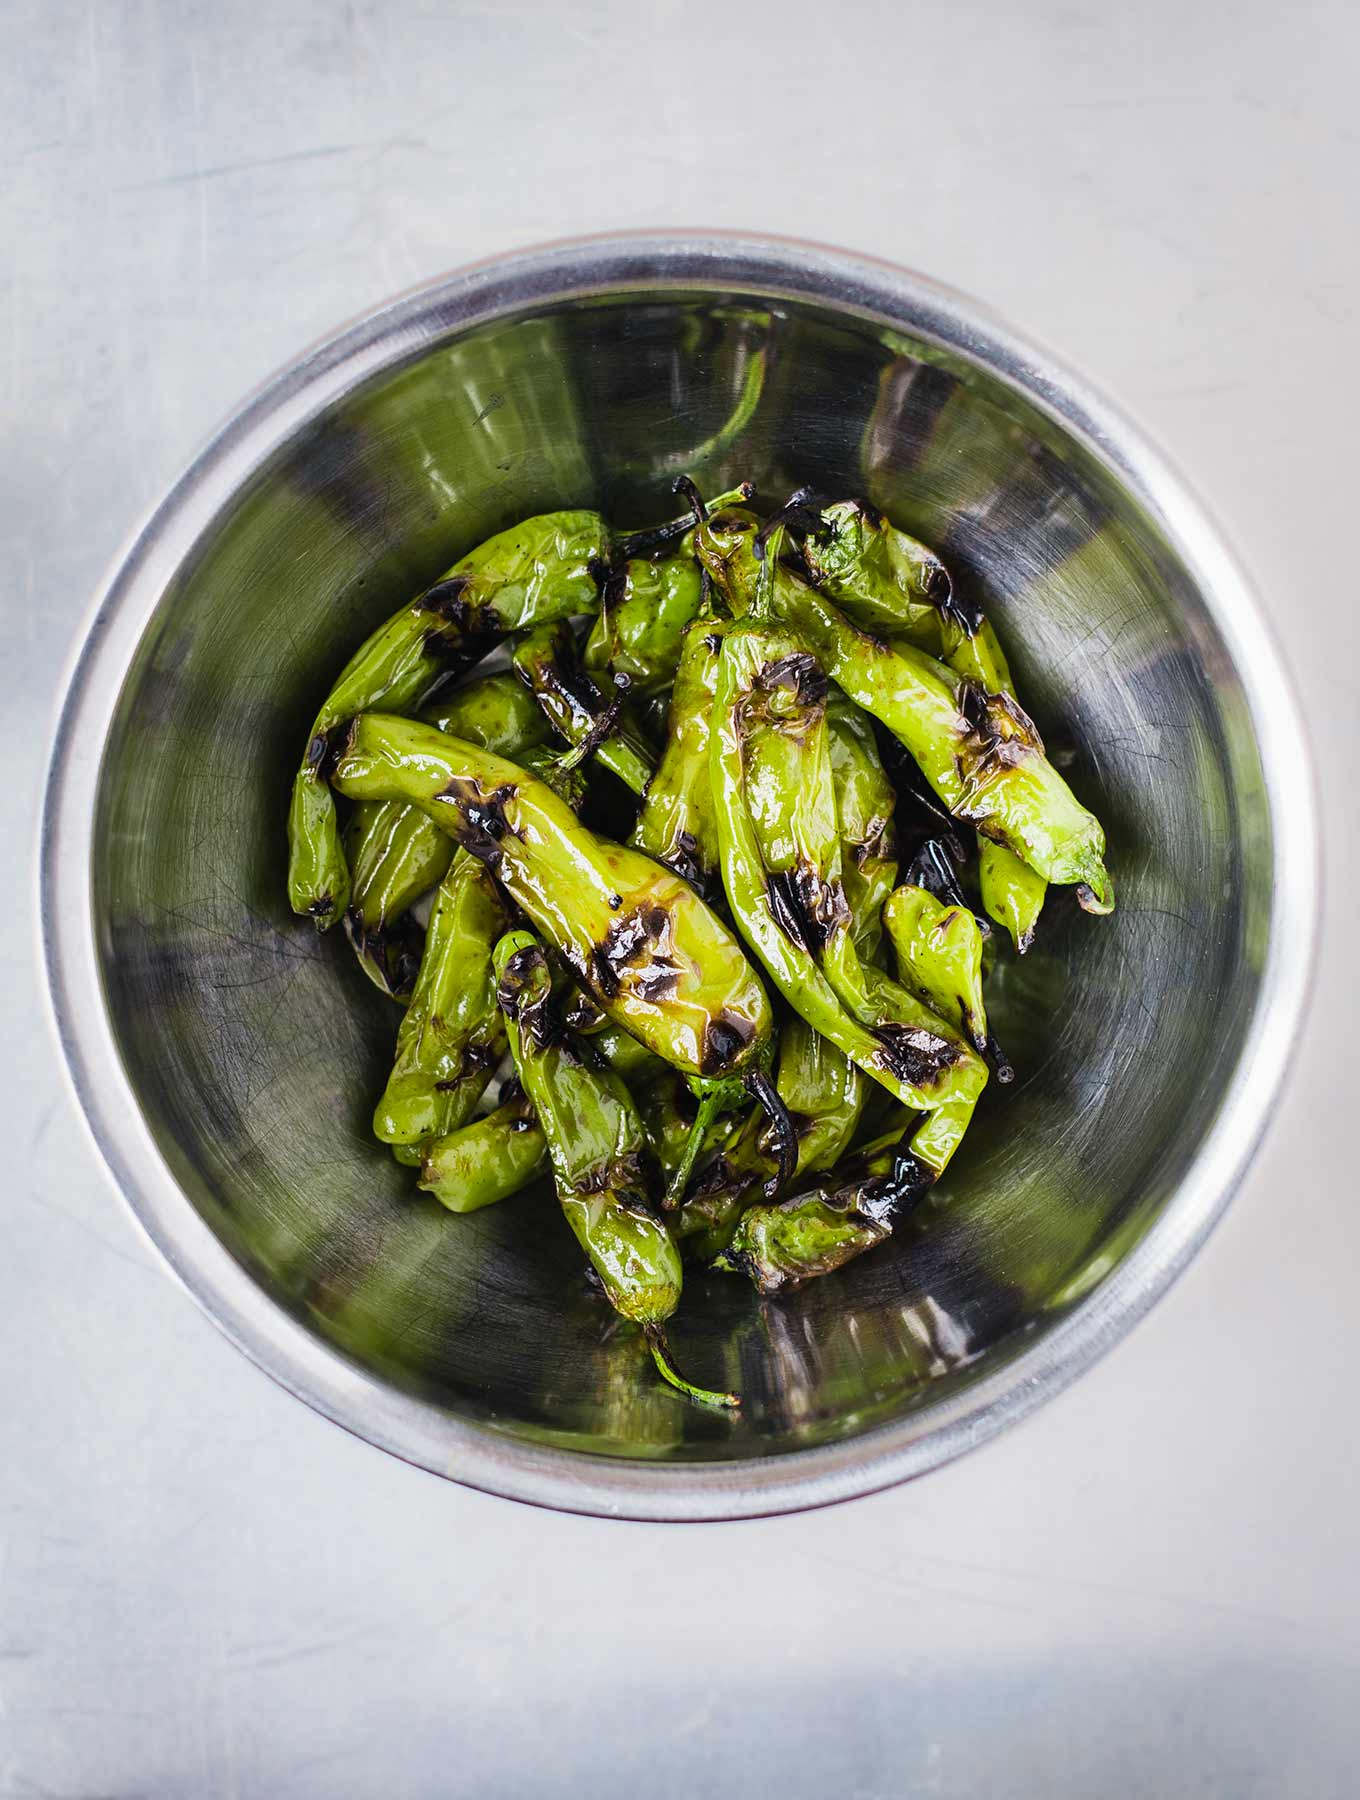 Grilled shishito peppers in stainless bowl